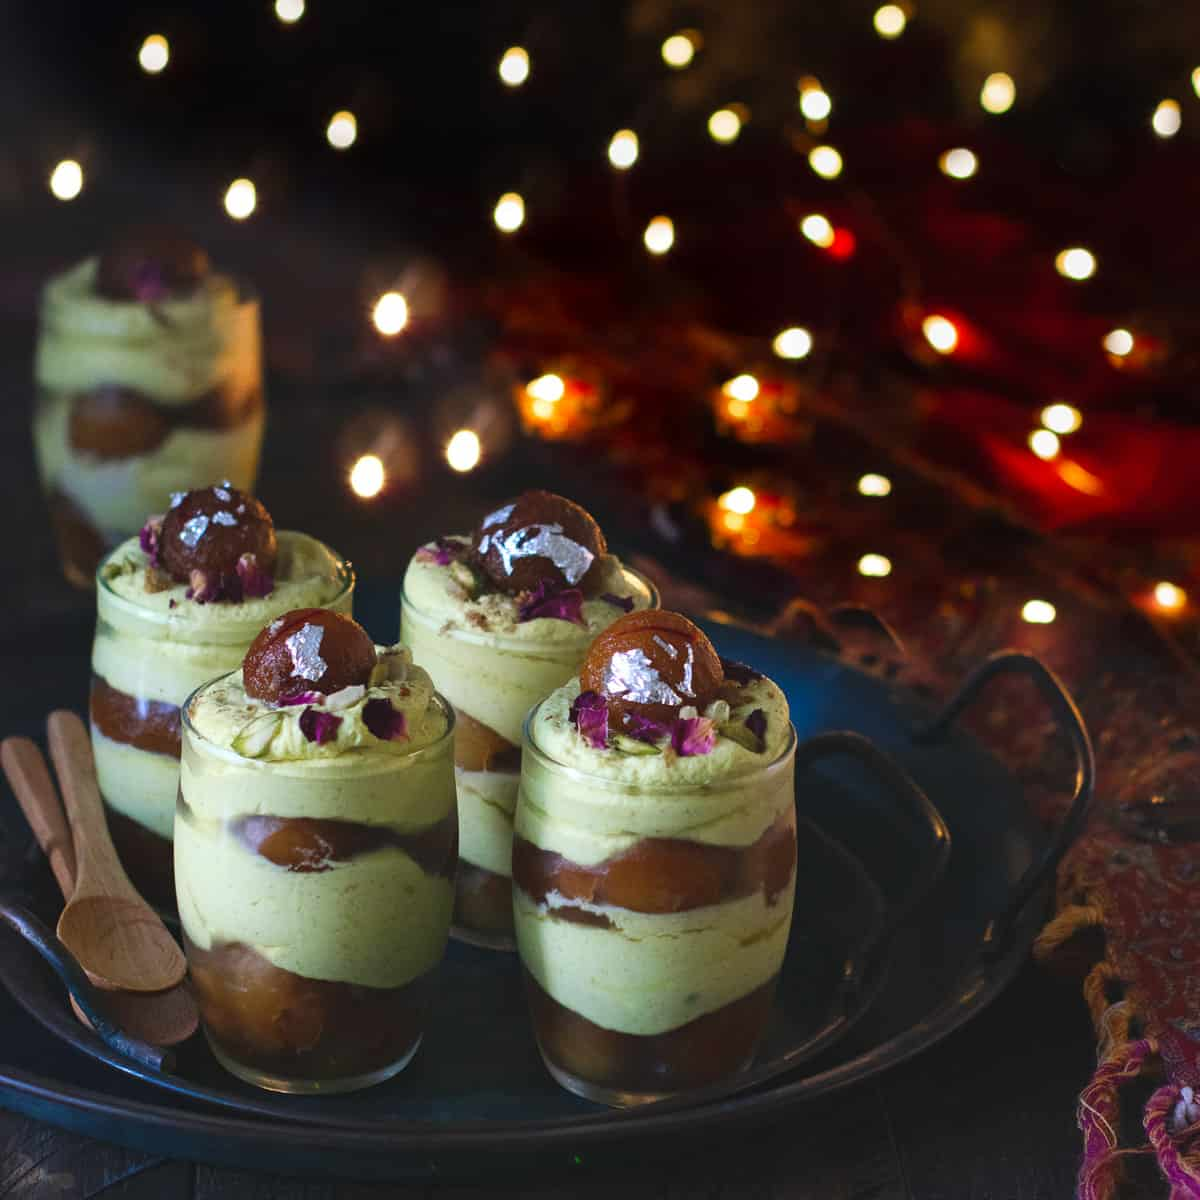 Thandai mousse with gulab jamun with diwali lights as a backdrop